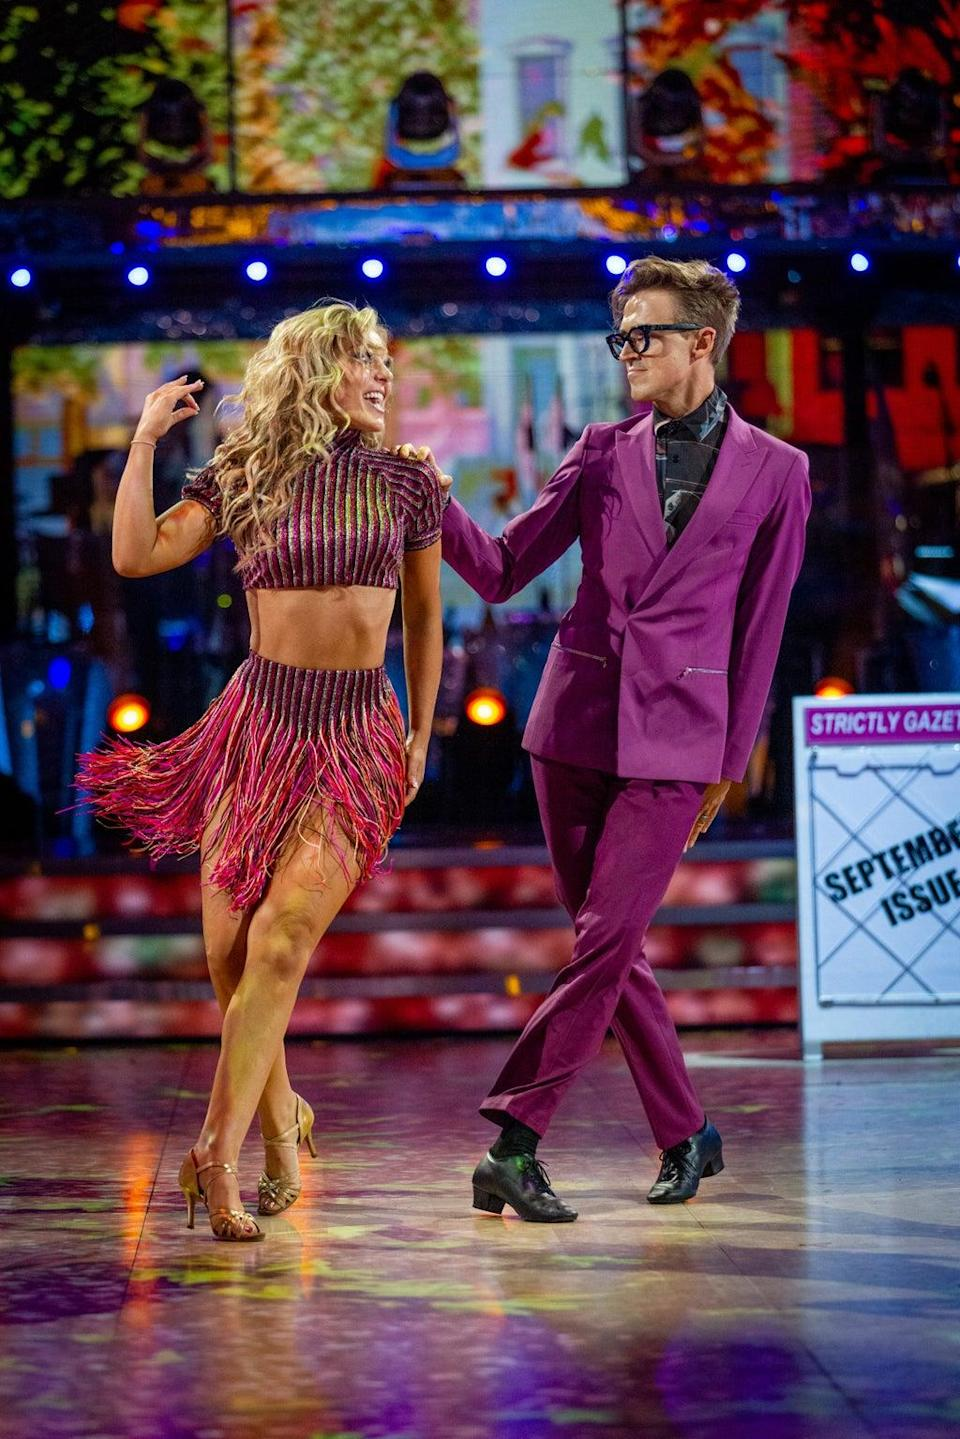 EMBARGOED TO 2120 SATURDAY SEPTEMBER 25 For use in UK, Ireland or Benelux countries only Undated BBC handout photo of Amy Dowden and Tom Fletcher during the dress run for the first episode of Strictly Come Dancing 2021. (PA Media)